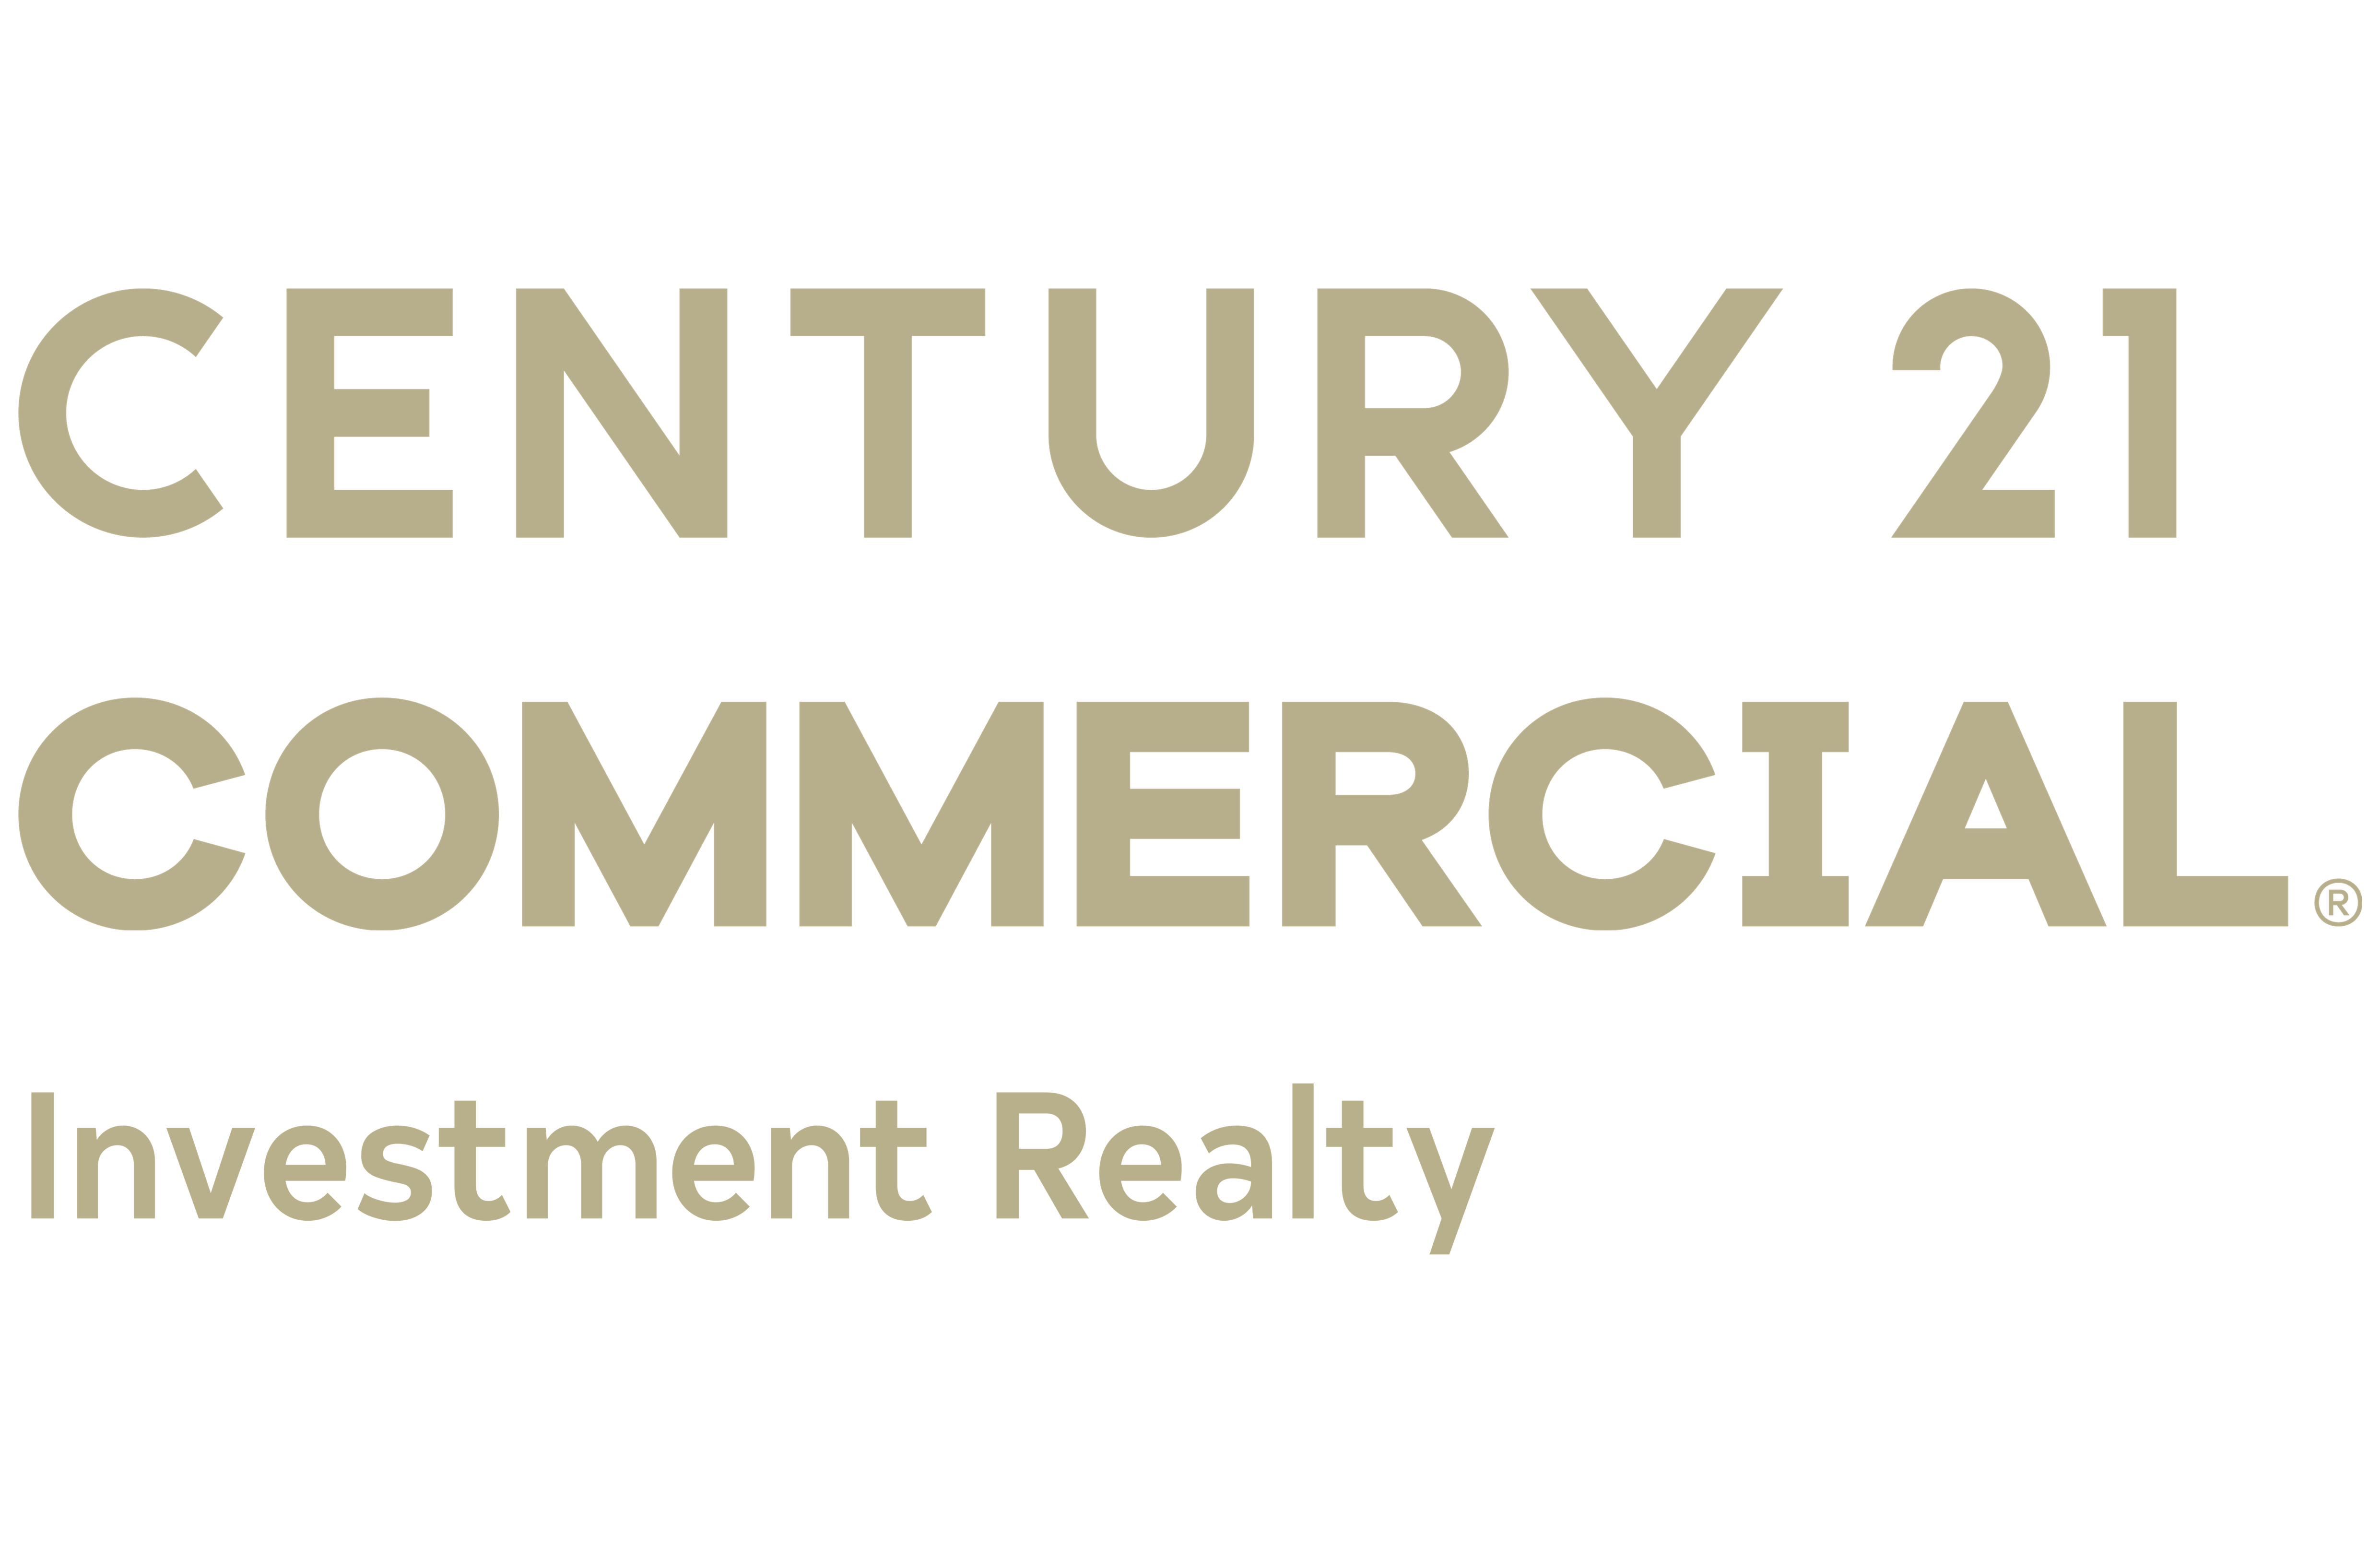 Jeff Breland of CENTURY 21 Investment Realty logo